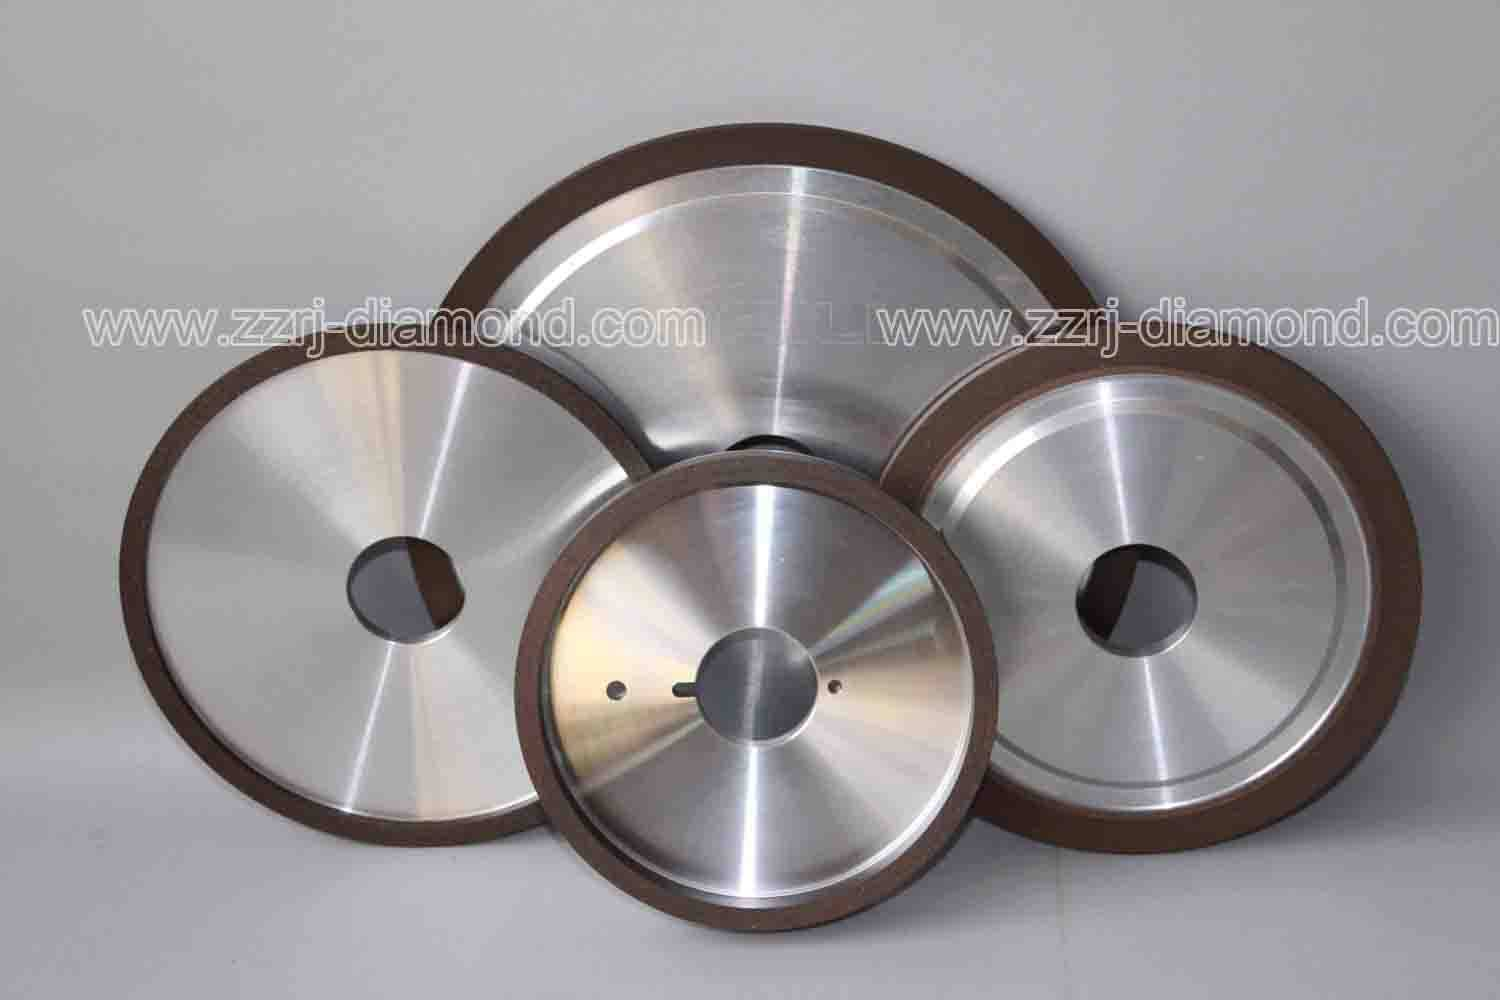 Resin bond, vitrified bond, metal bond diamond grinding wheels